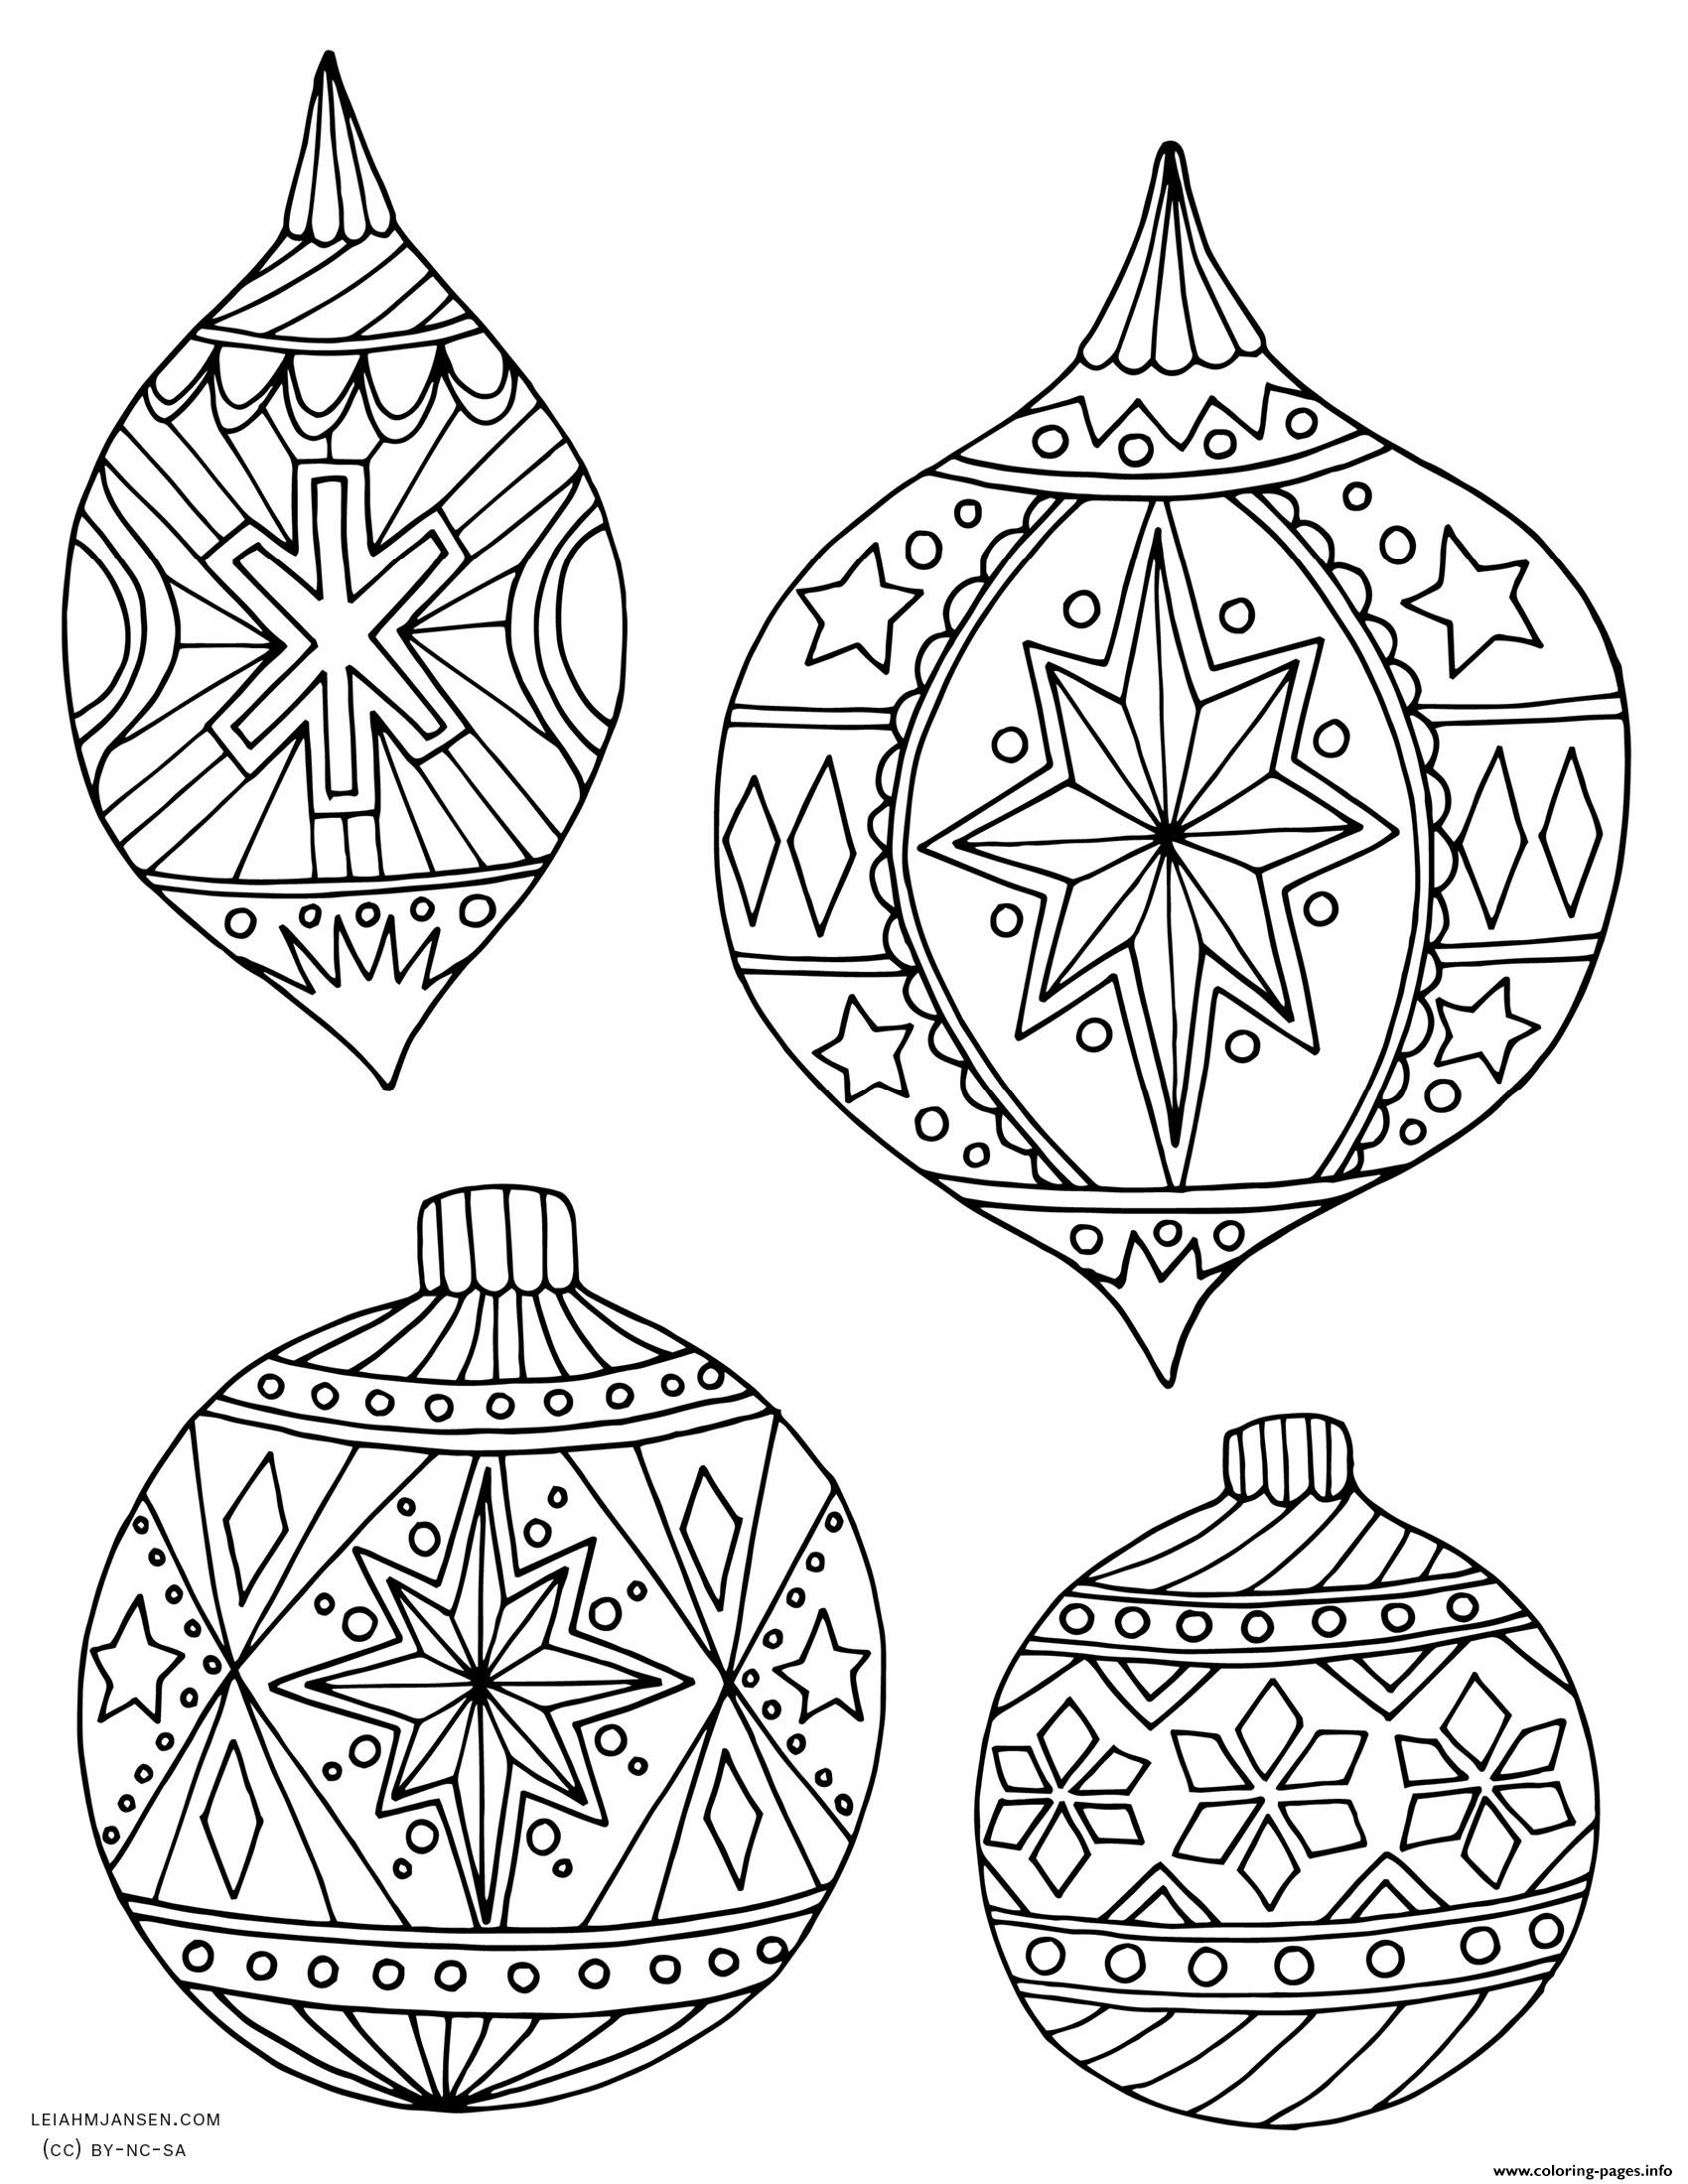 - Free Printable Christmas Ornament Coloring Pages لم يسبق له مثيل